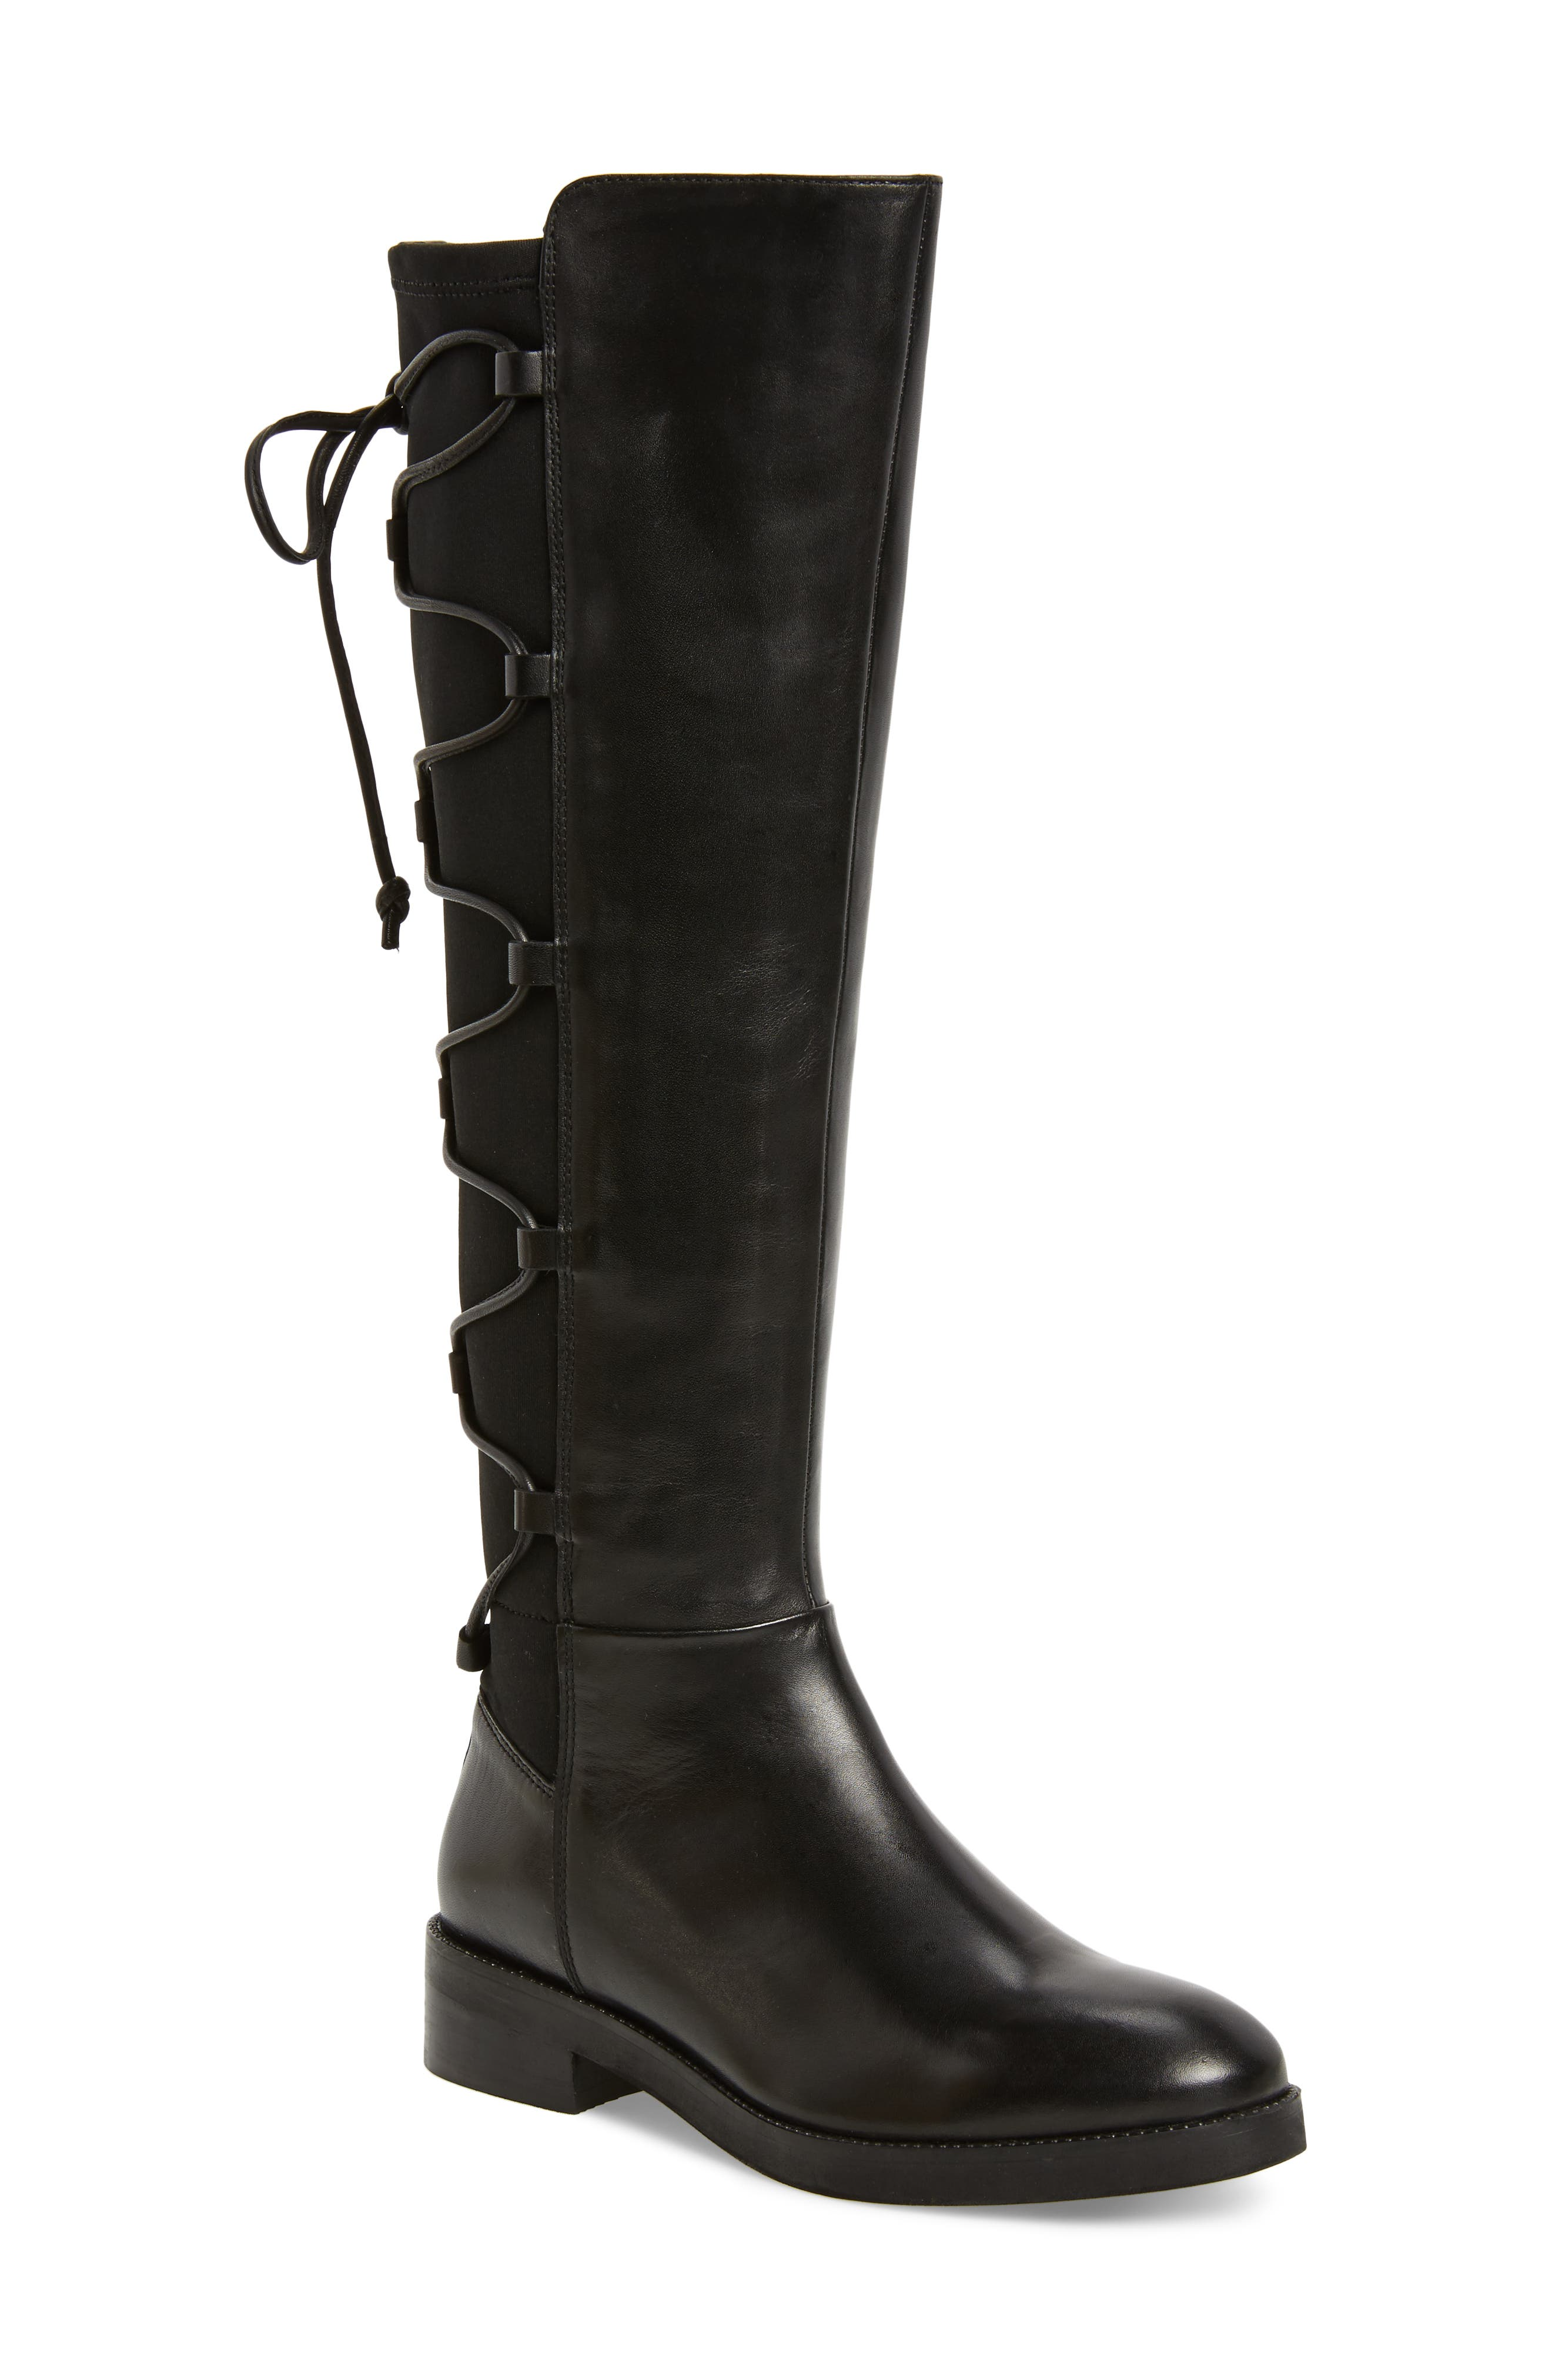 Alternate Image 1 Selected - Seychelles Dramatic Stretch Back Riding Boot (Women)